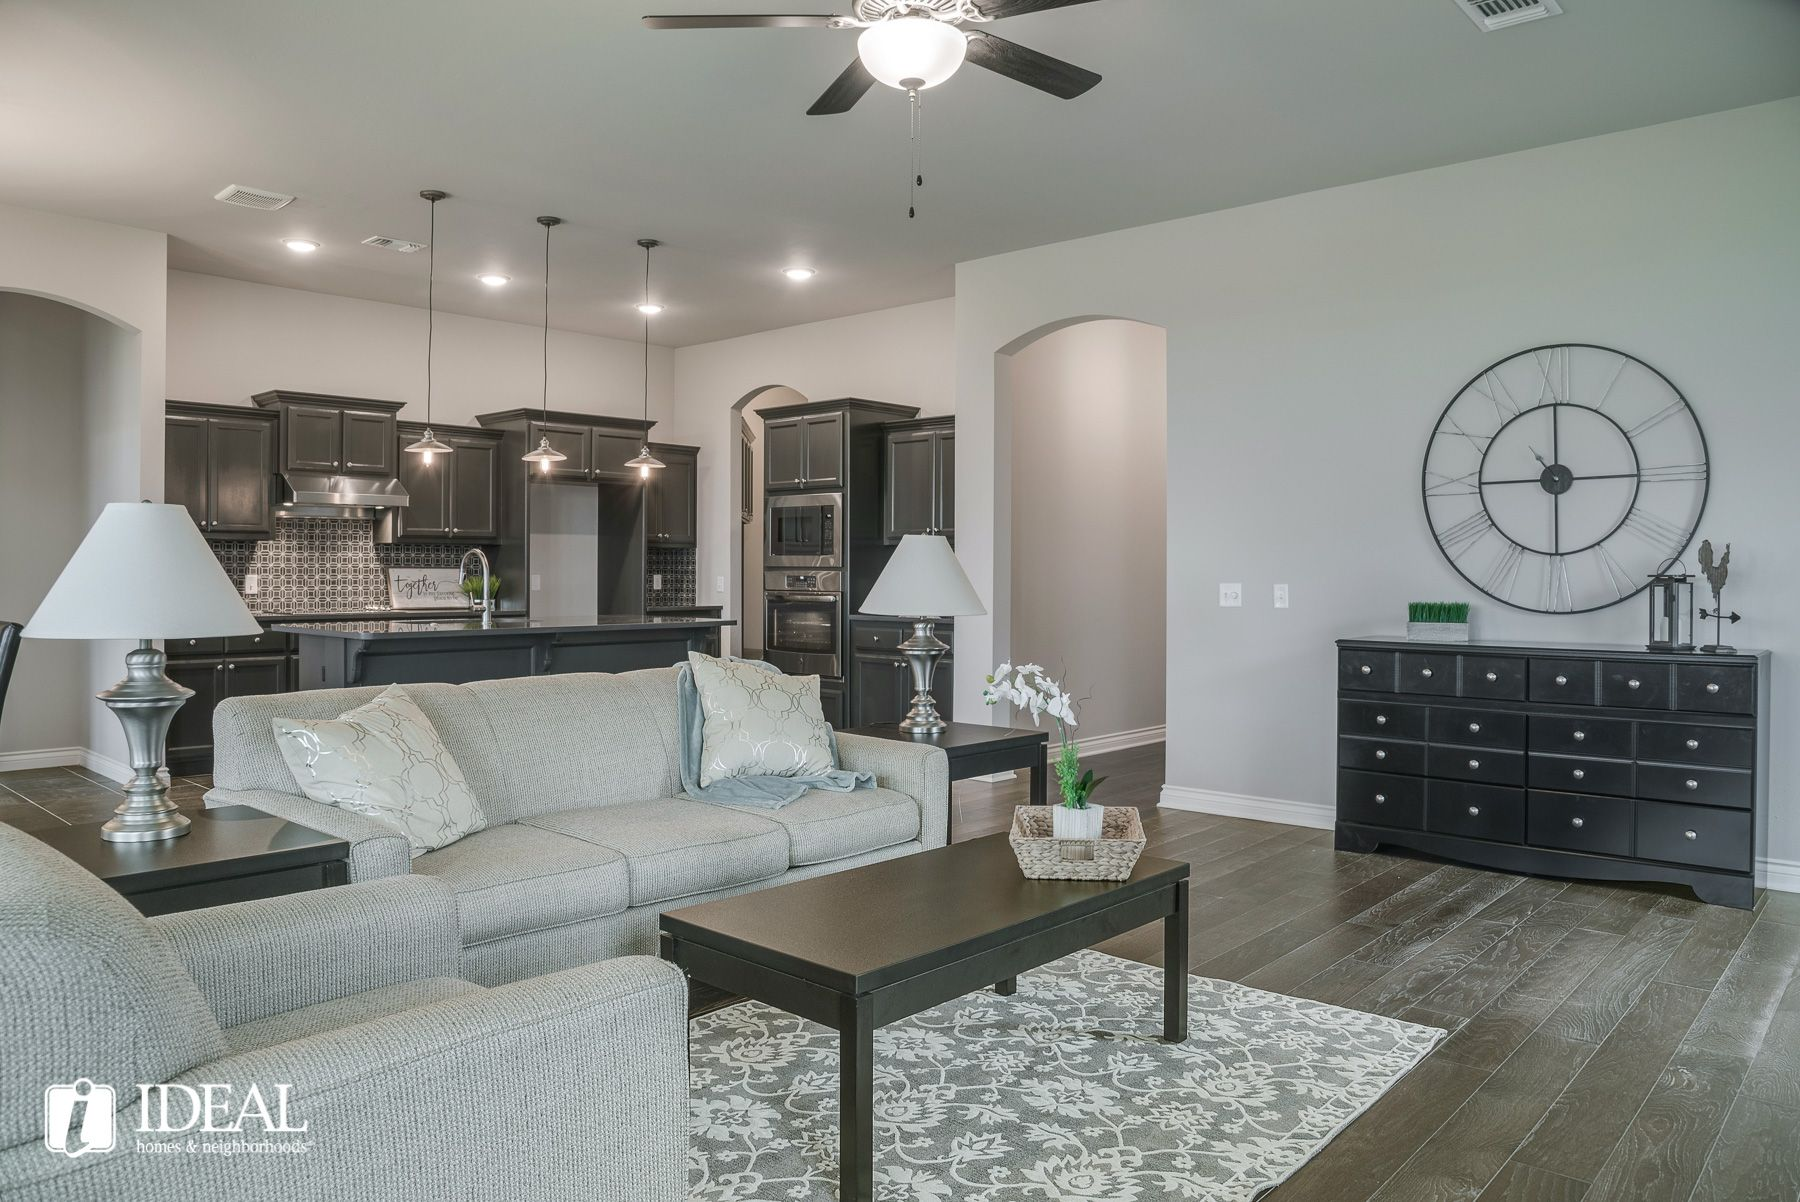 Living Area featured in the Marietta By Ideal Homes in Oklahoma City, OK